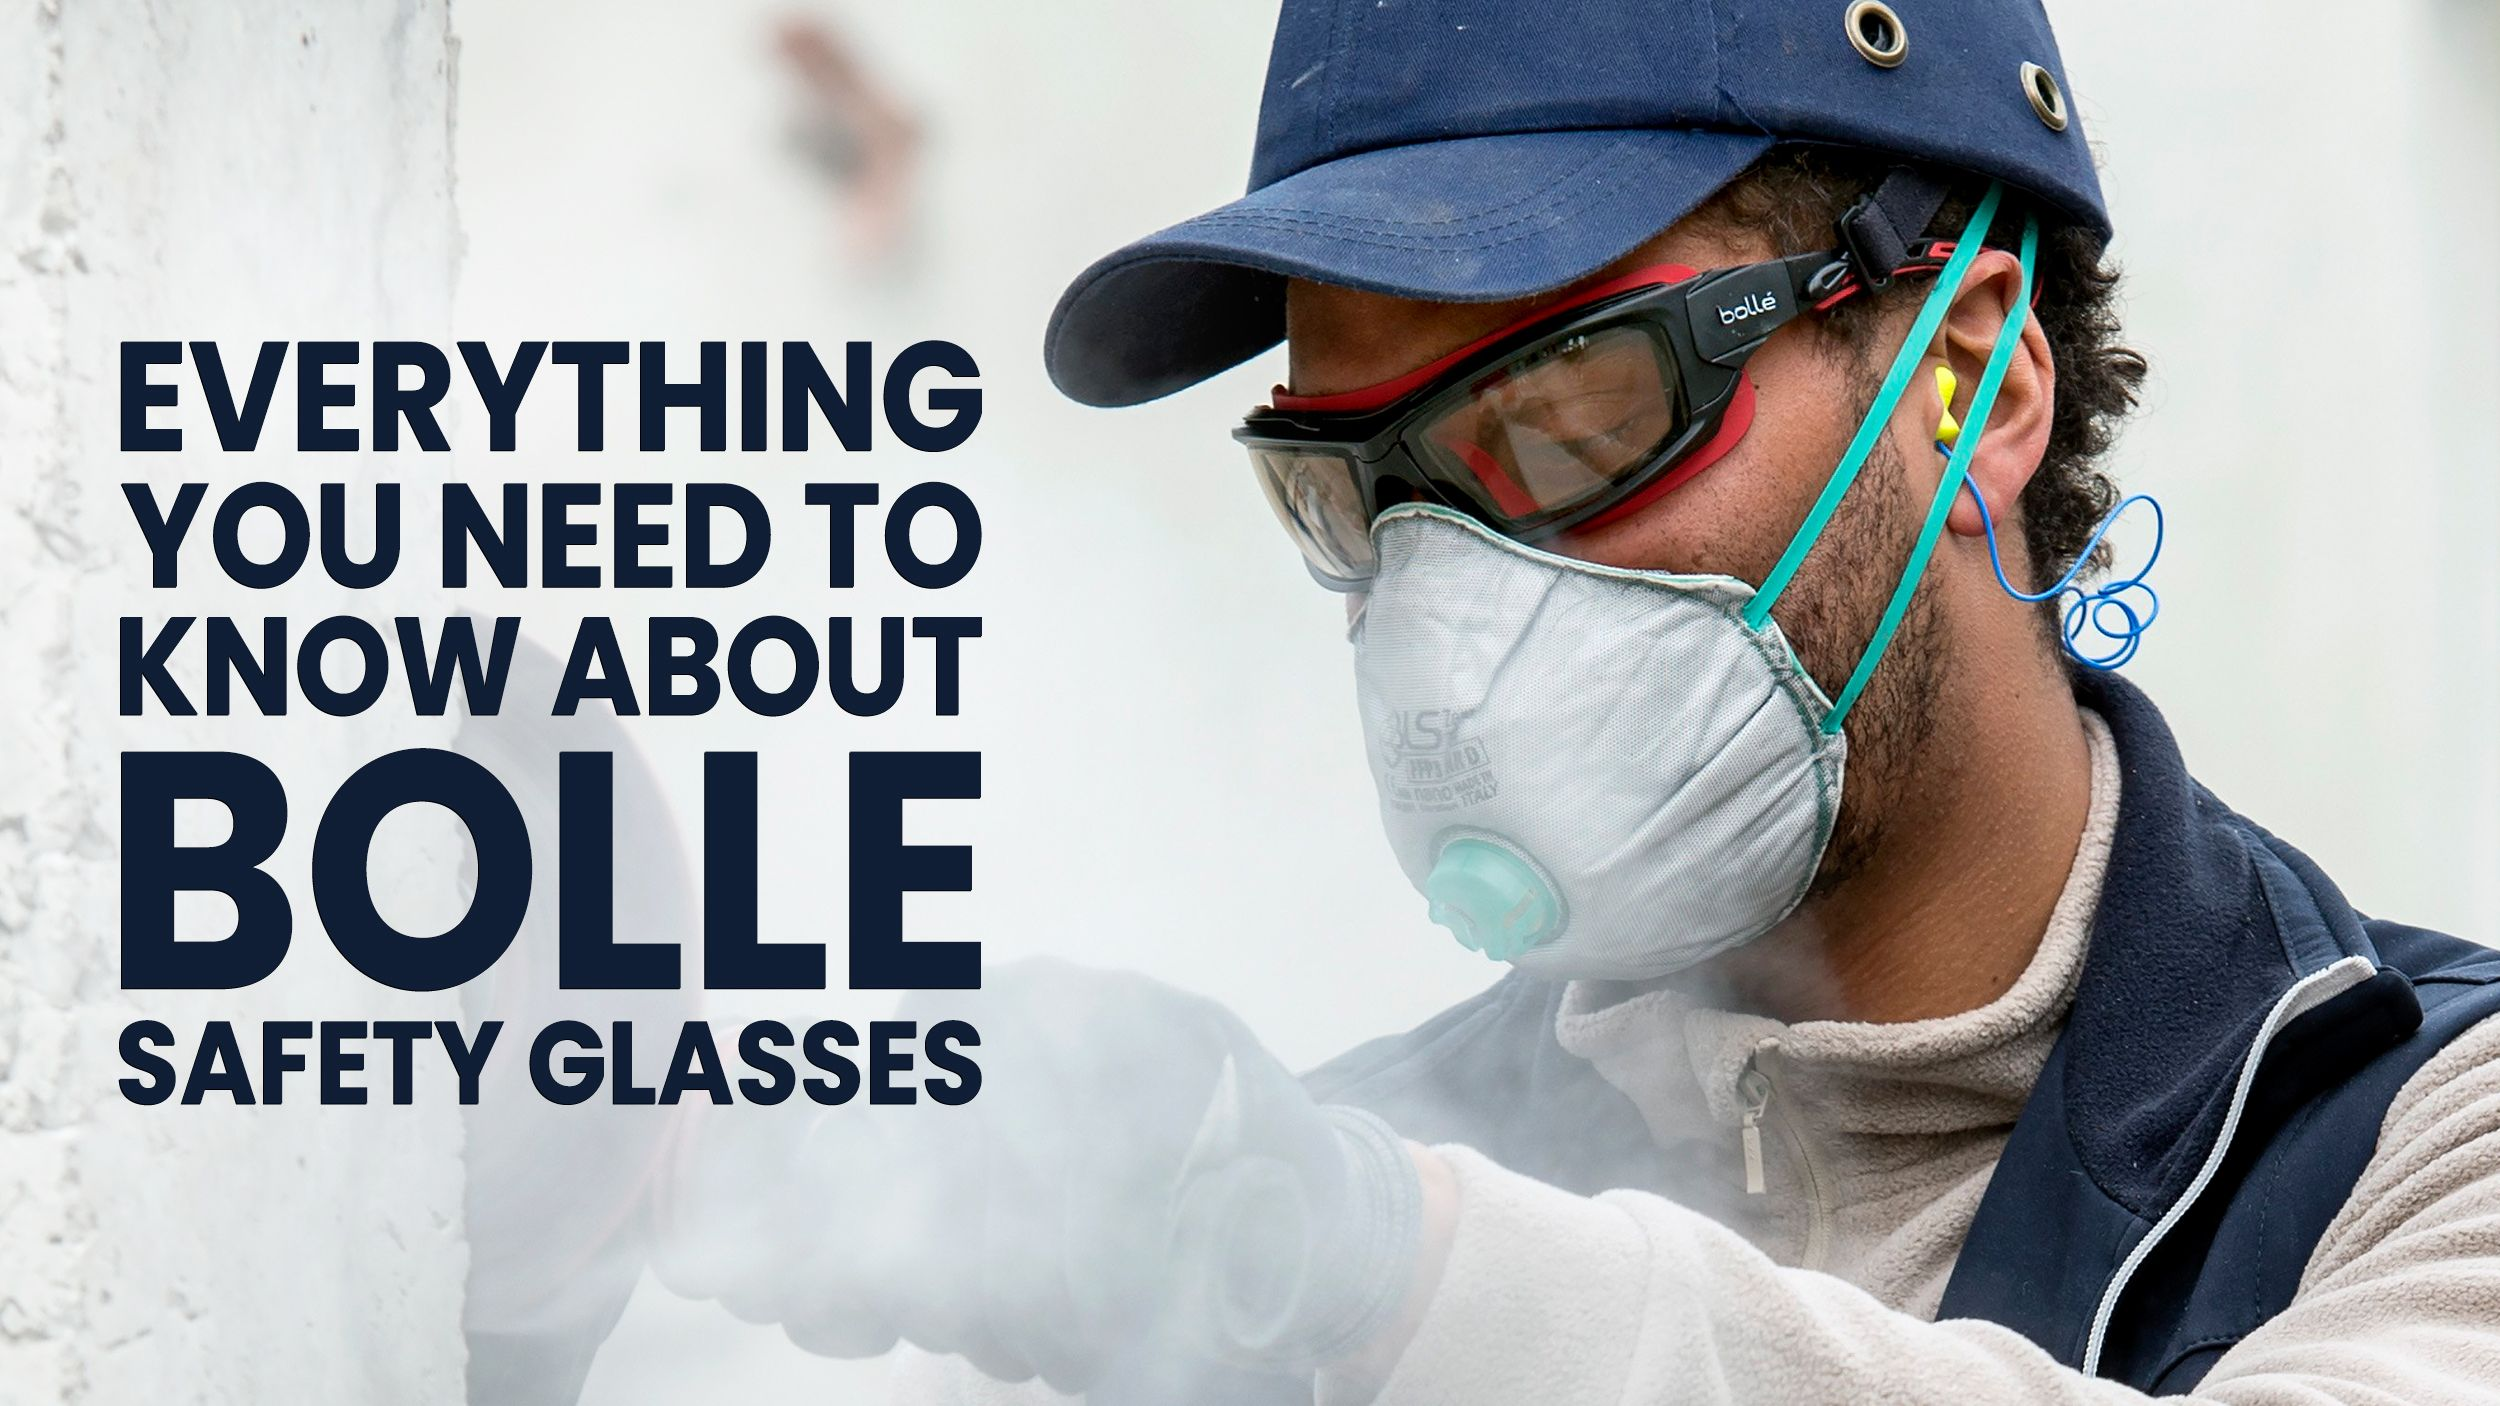 Everything You Need To Know About Bolle Safety Glasses Header